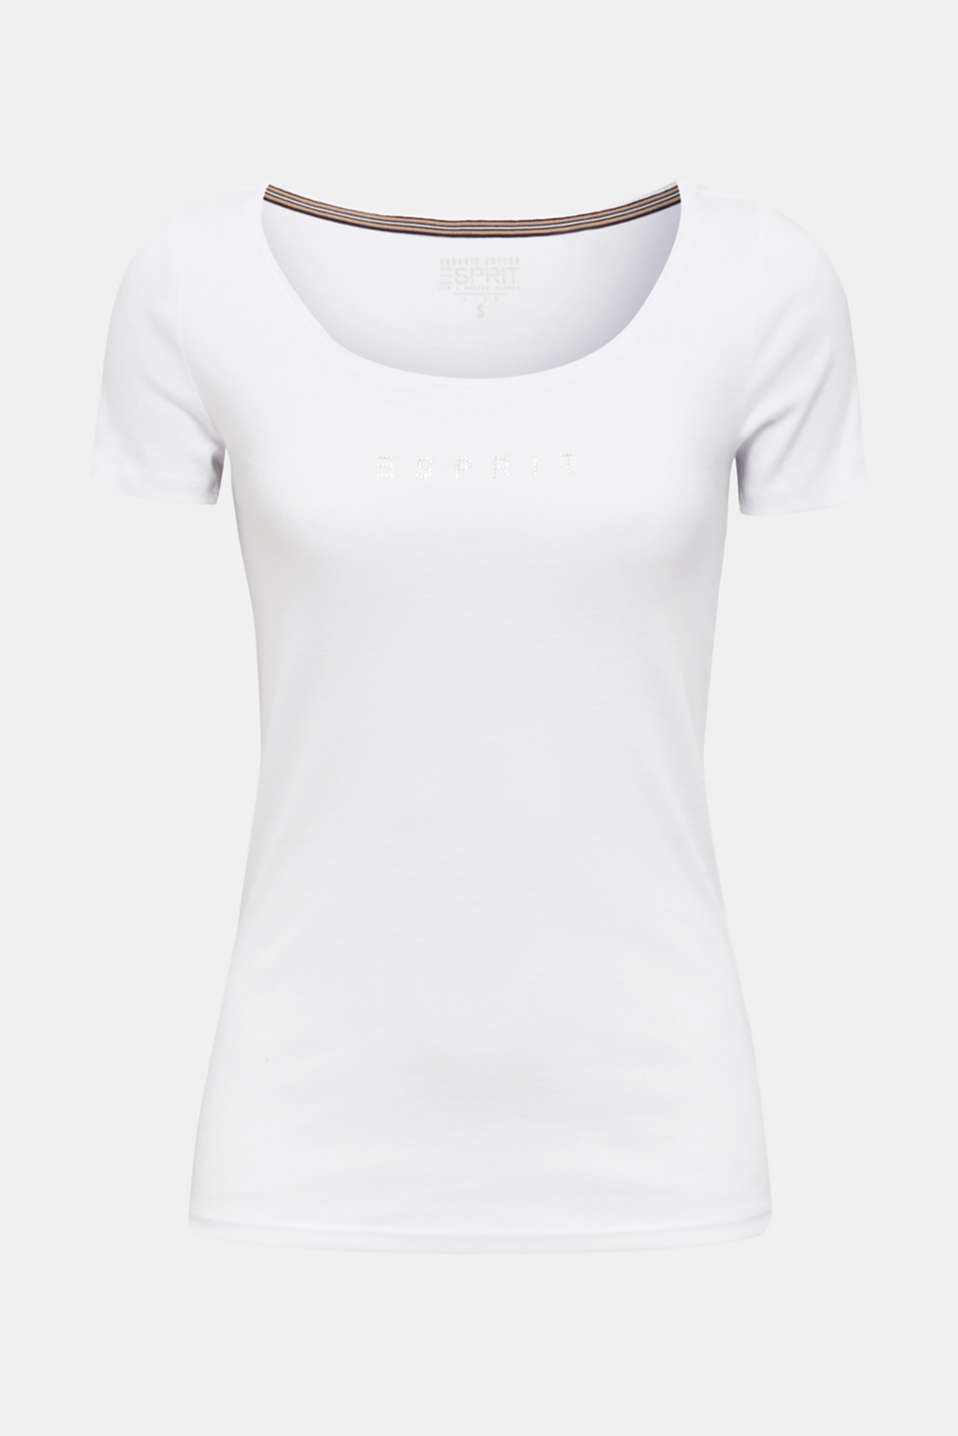 Rhinestone logo top, 100% cotton, WHITE, detail image number 5